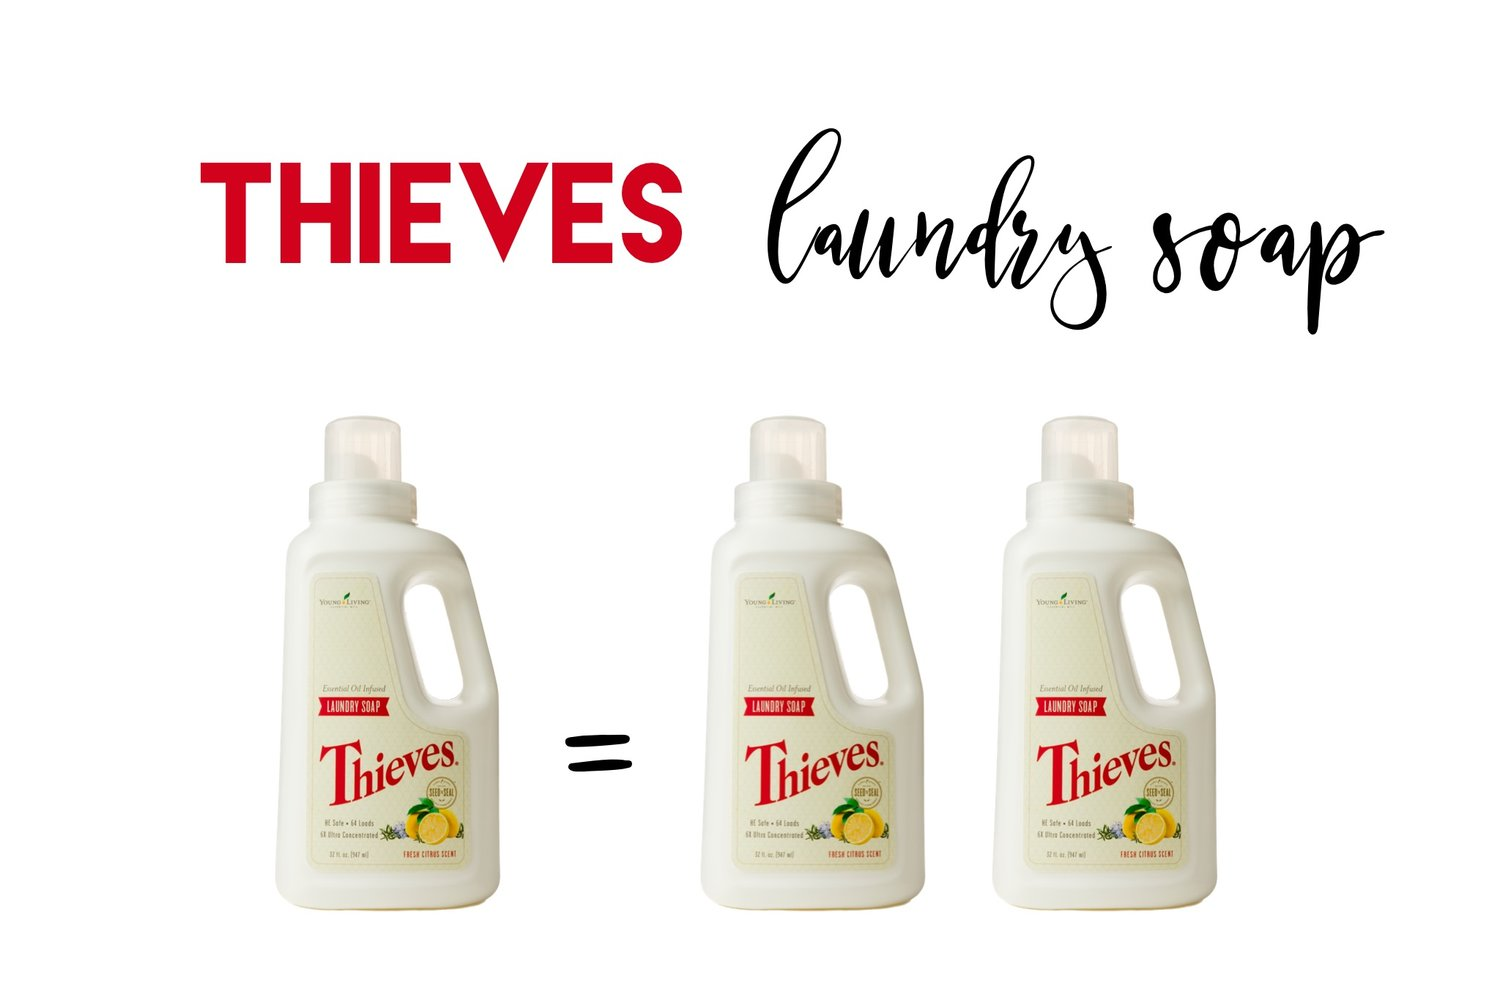 Image result for thieves laundry soap hack image